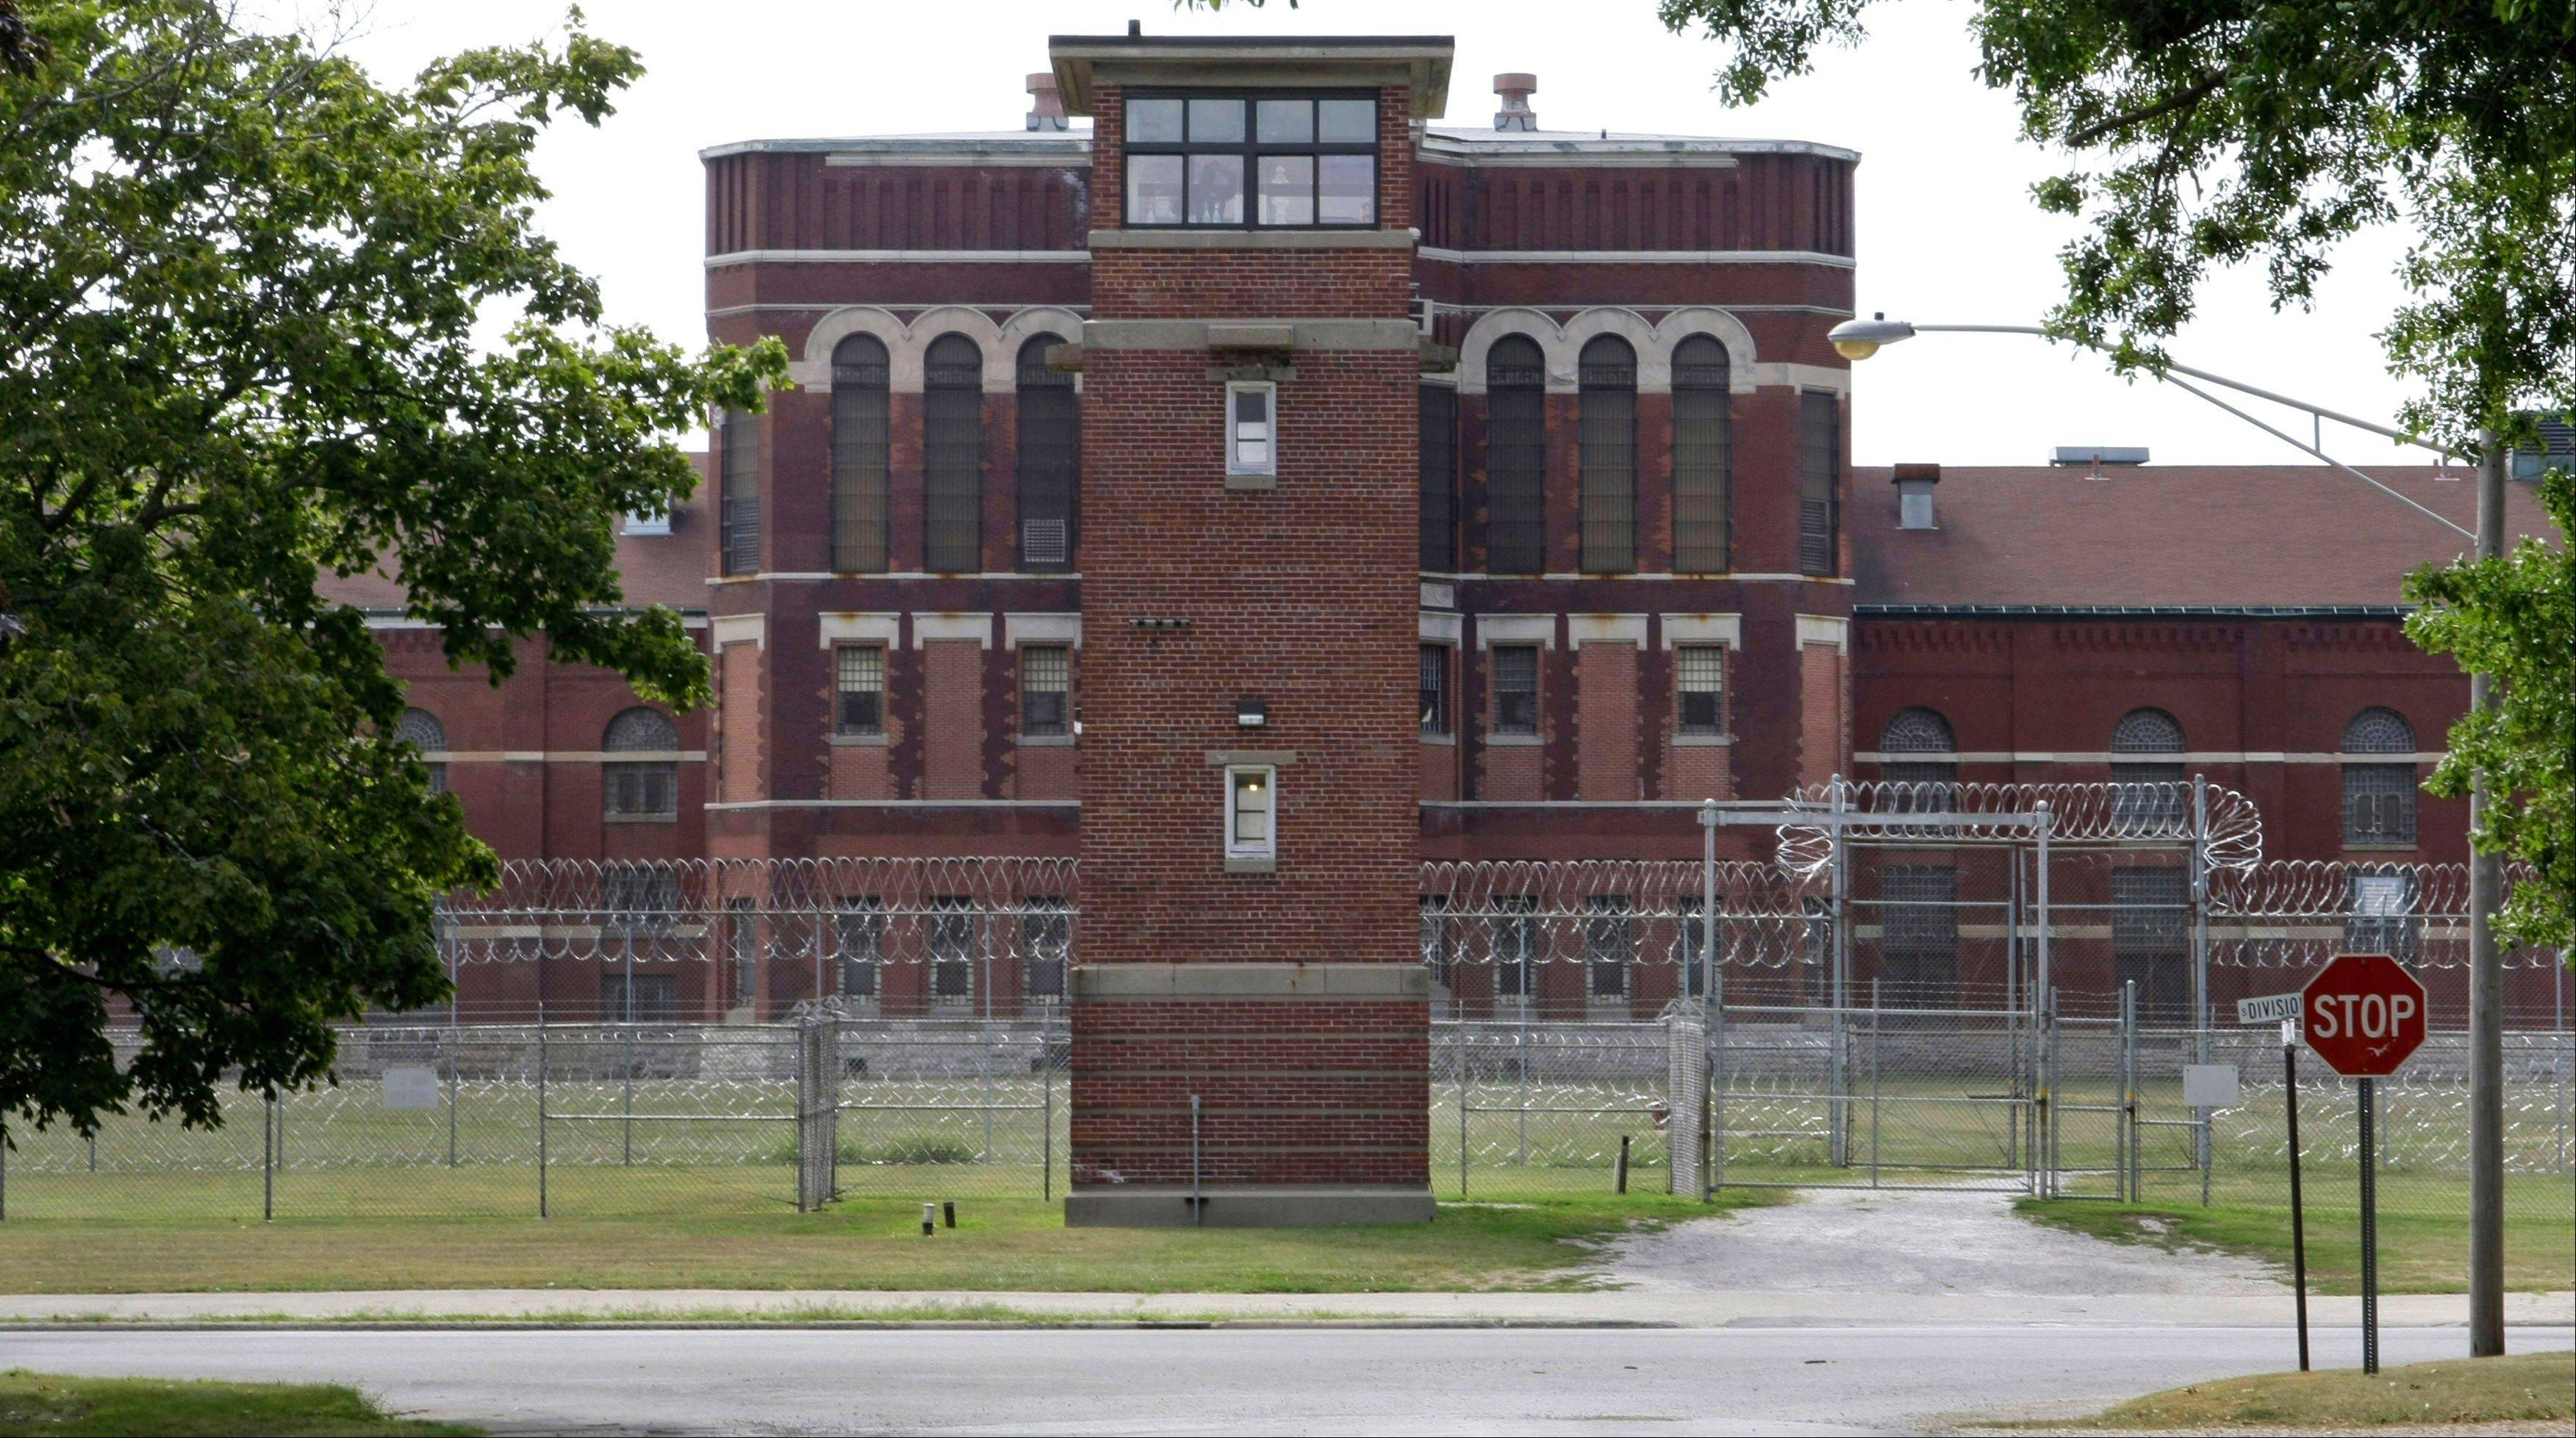 Preliminary autopsy results show that the July 8 death of 65-year-old Pontiac Correctional Center inmate Richard Anderson was heat-related.